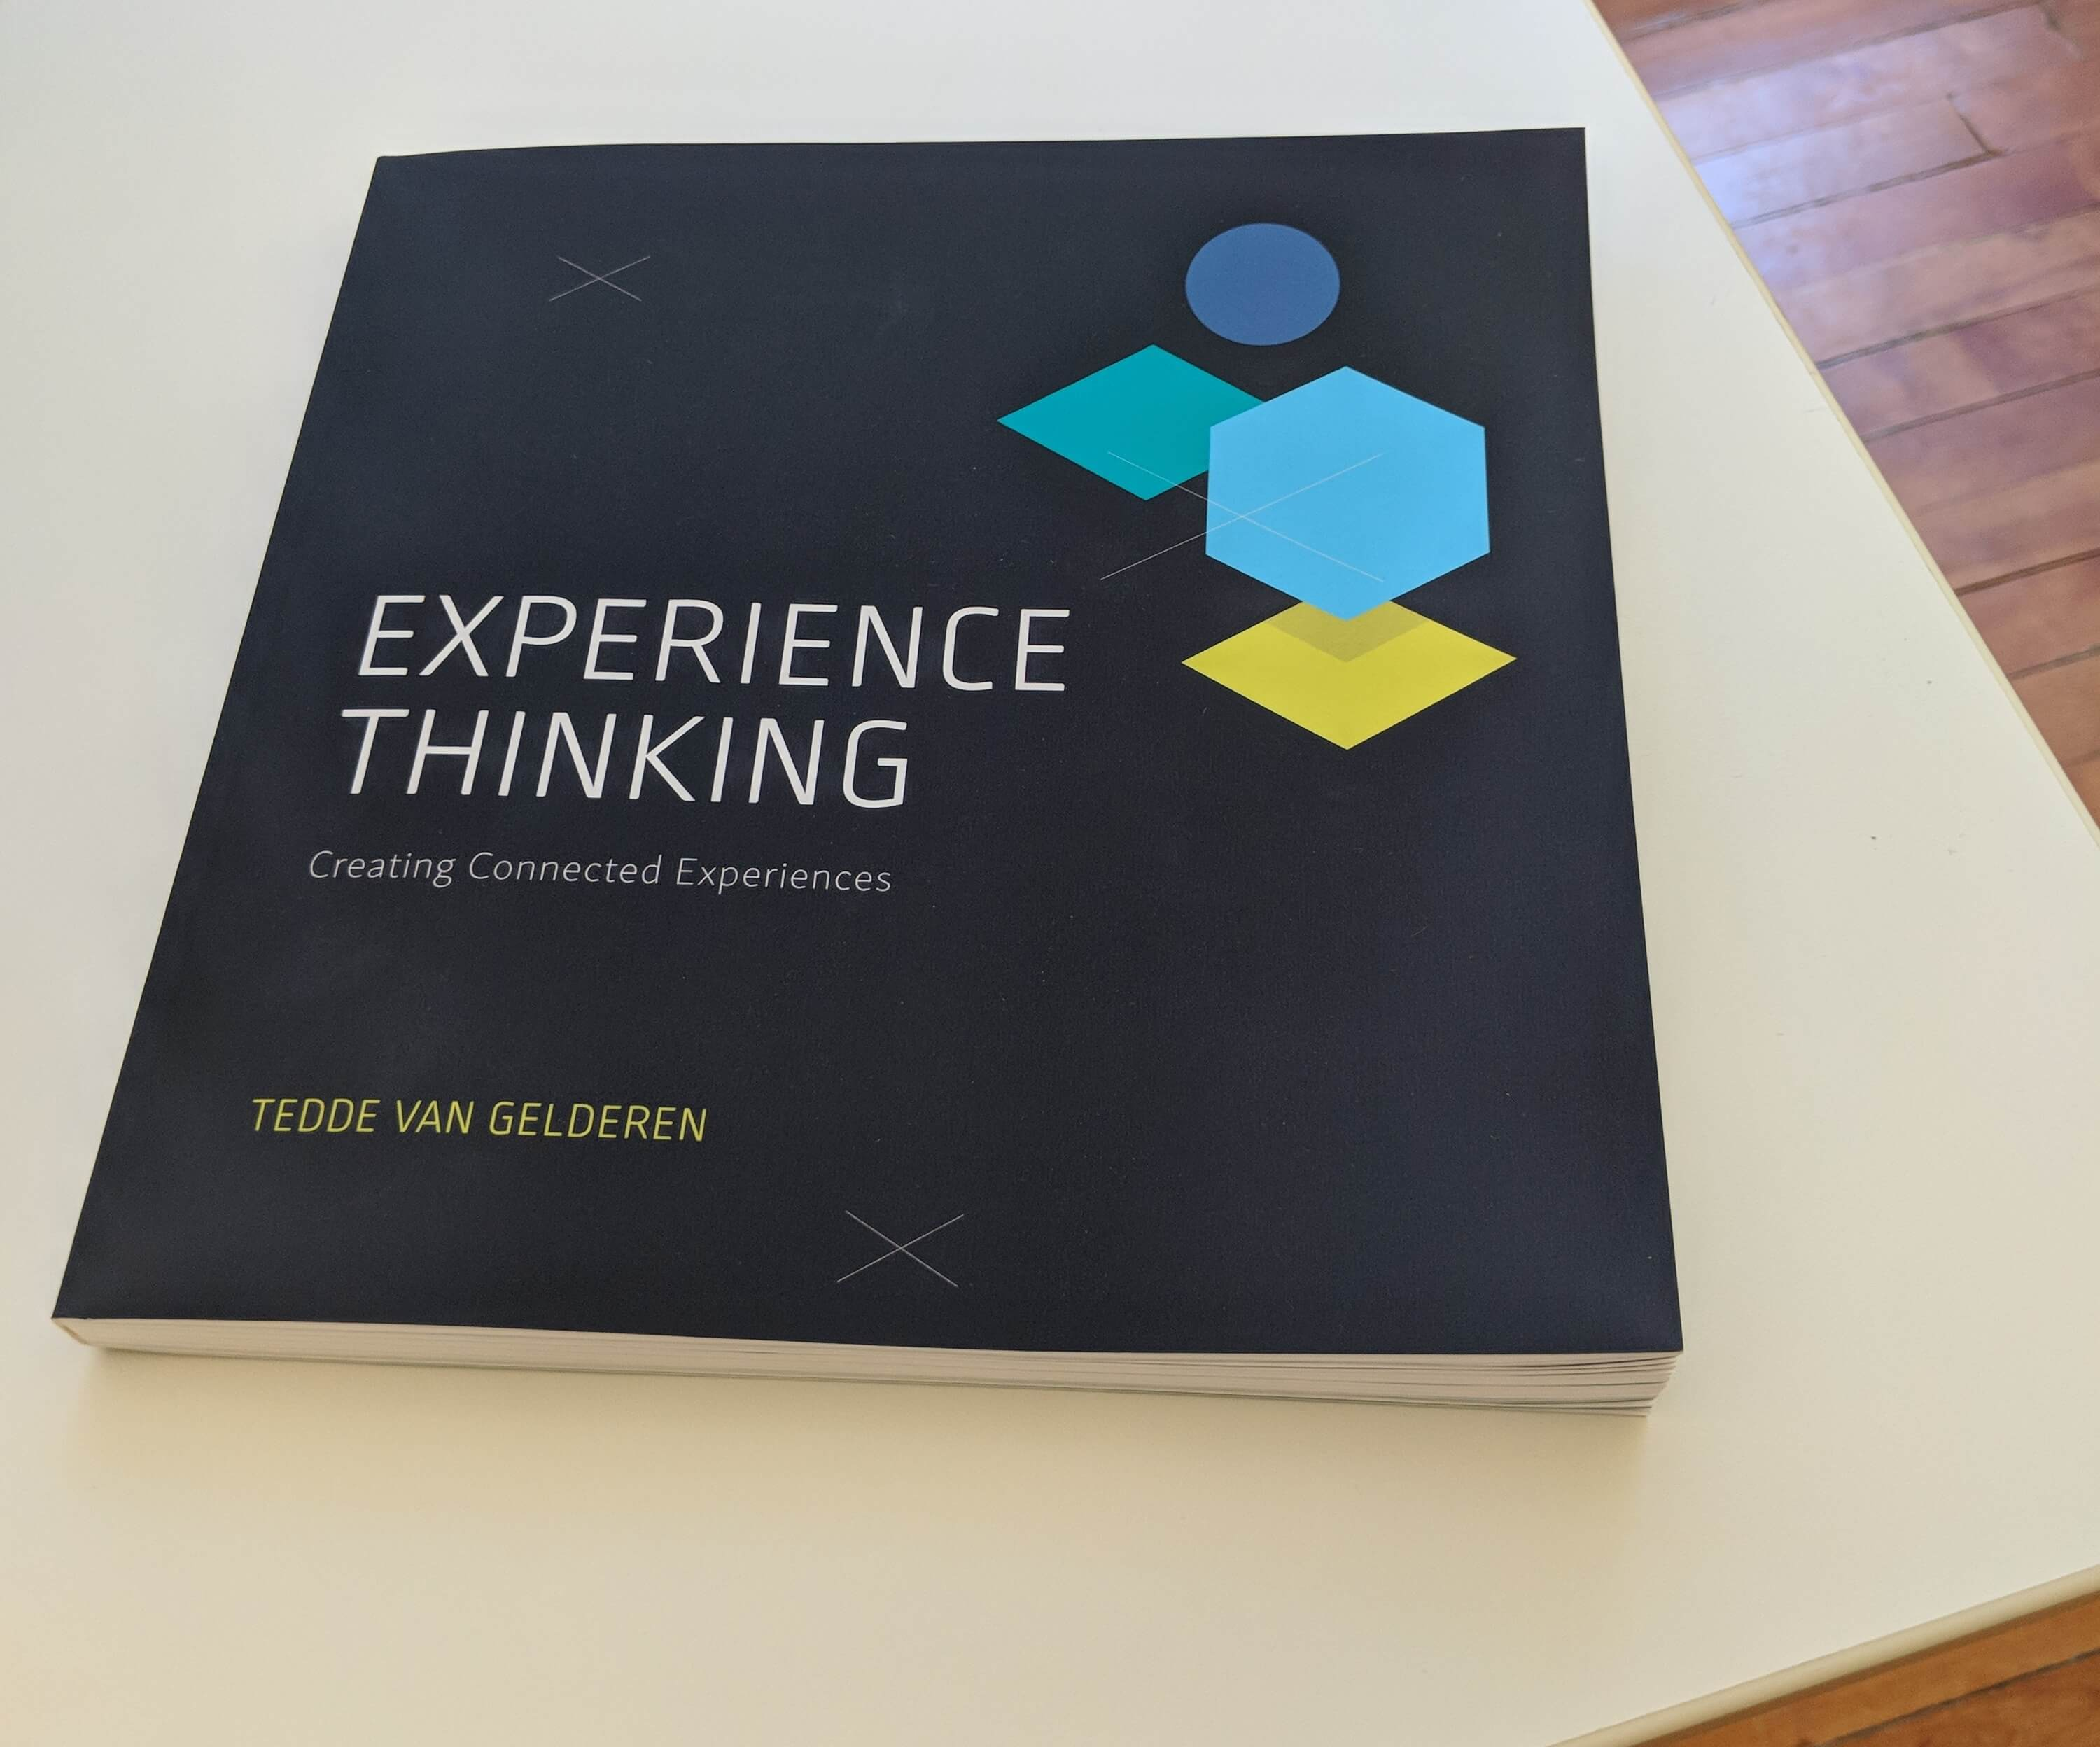 Experience Thinking book by Tedde van Gelderen